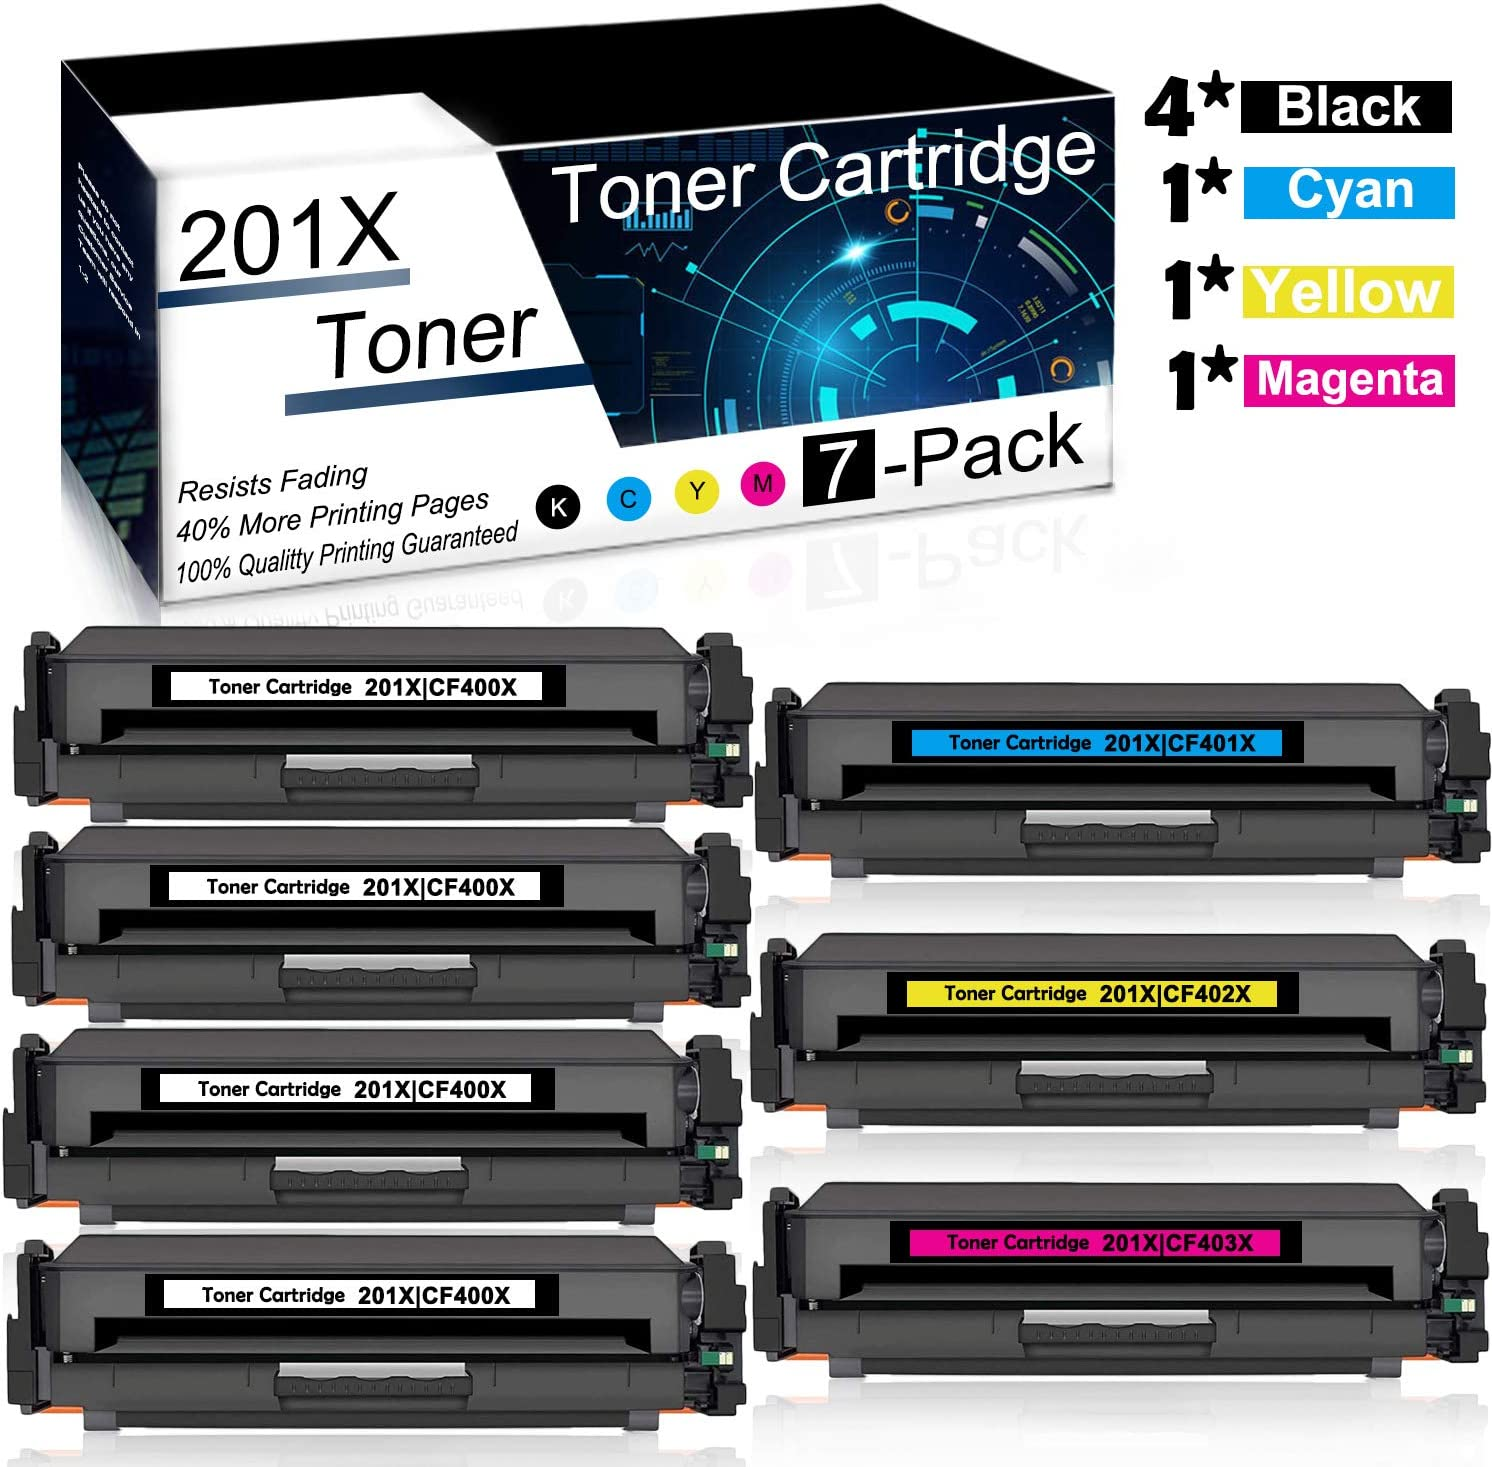 MFP M277c6 Printer Included 2 Cyan Compatible High Yield 201X 2 Magenta MFP M277n 2C+2Y+2M 6-Pack 2 Yellow CF401X CF402X CF403X Toner Cartridge use for HP Color Laserjet Pro MFP M277dw